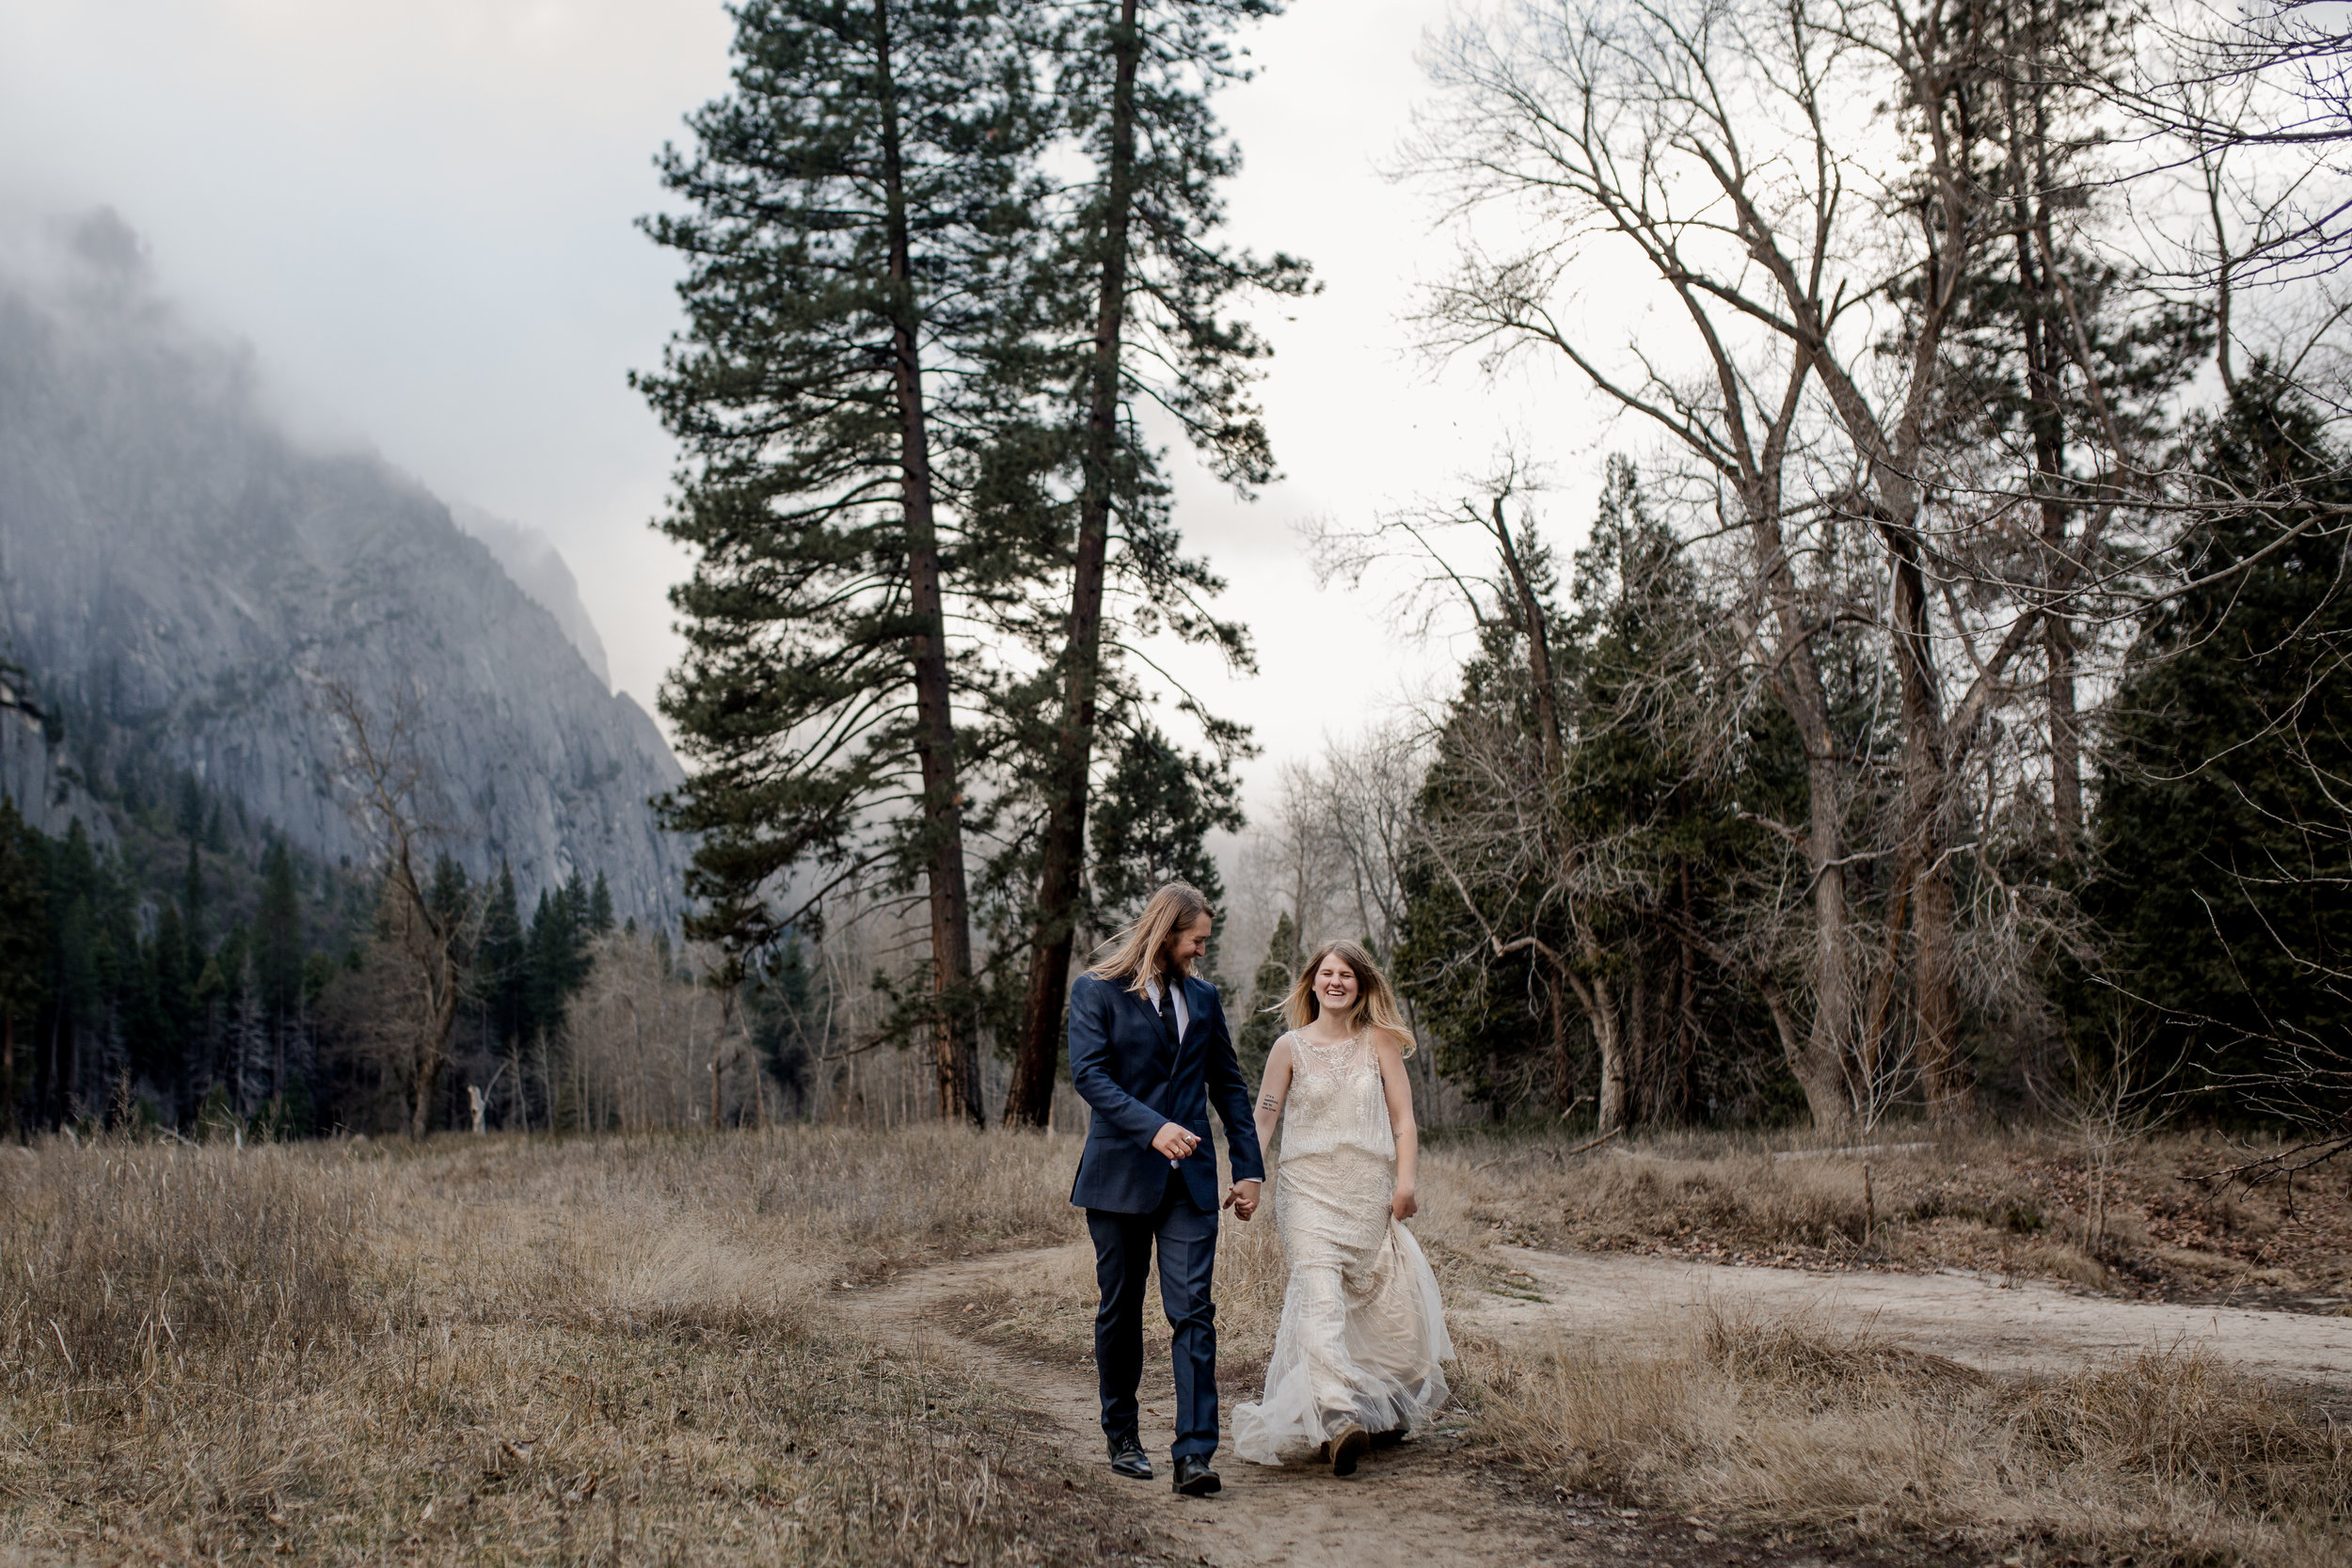 nicole-daacke-photography-yousemite-national-park-elopement-photographer-winter-cloud-moody-elope-inspiration-yosemite-valley-tunnel-view-winter-cloud-fog-weather-wedding-photos-61.jpg